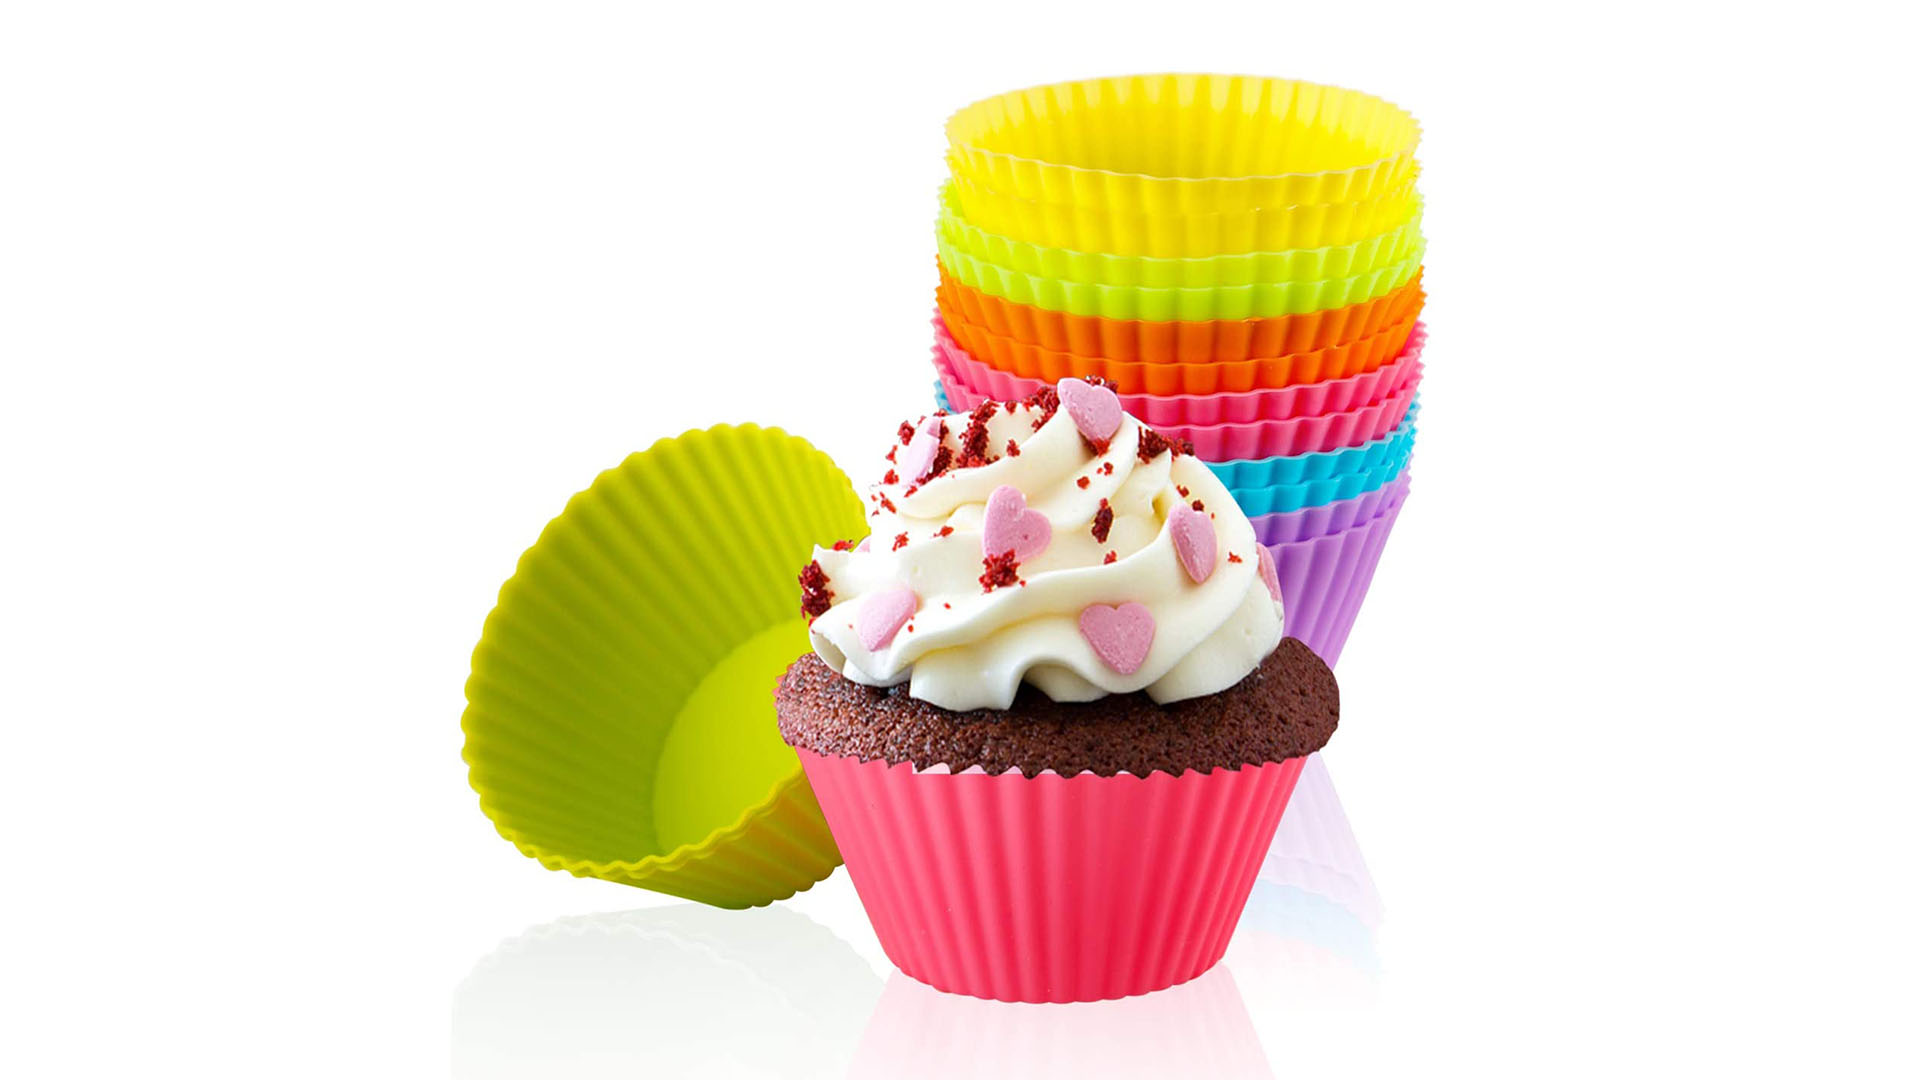 Factory Direct Silicone Cupcake Doublures Moules Cuisson Silicone Muffin Tasse Plateau Pas cher Cupcake Silicon Pan DH Silicone Fournisseur